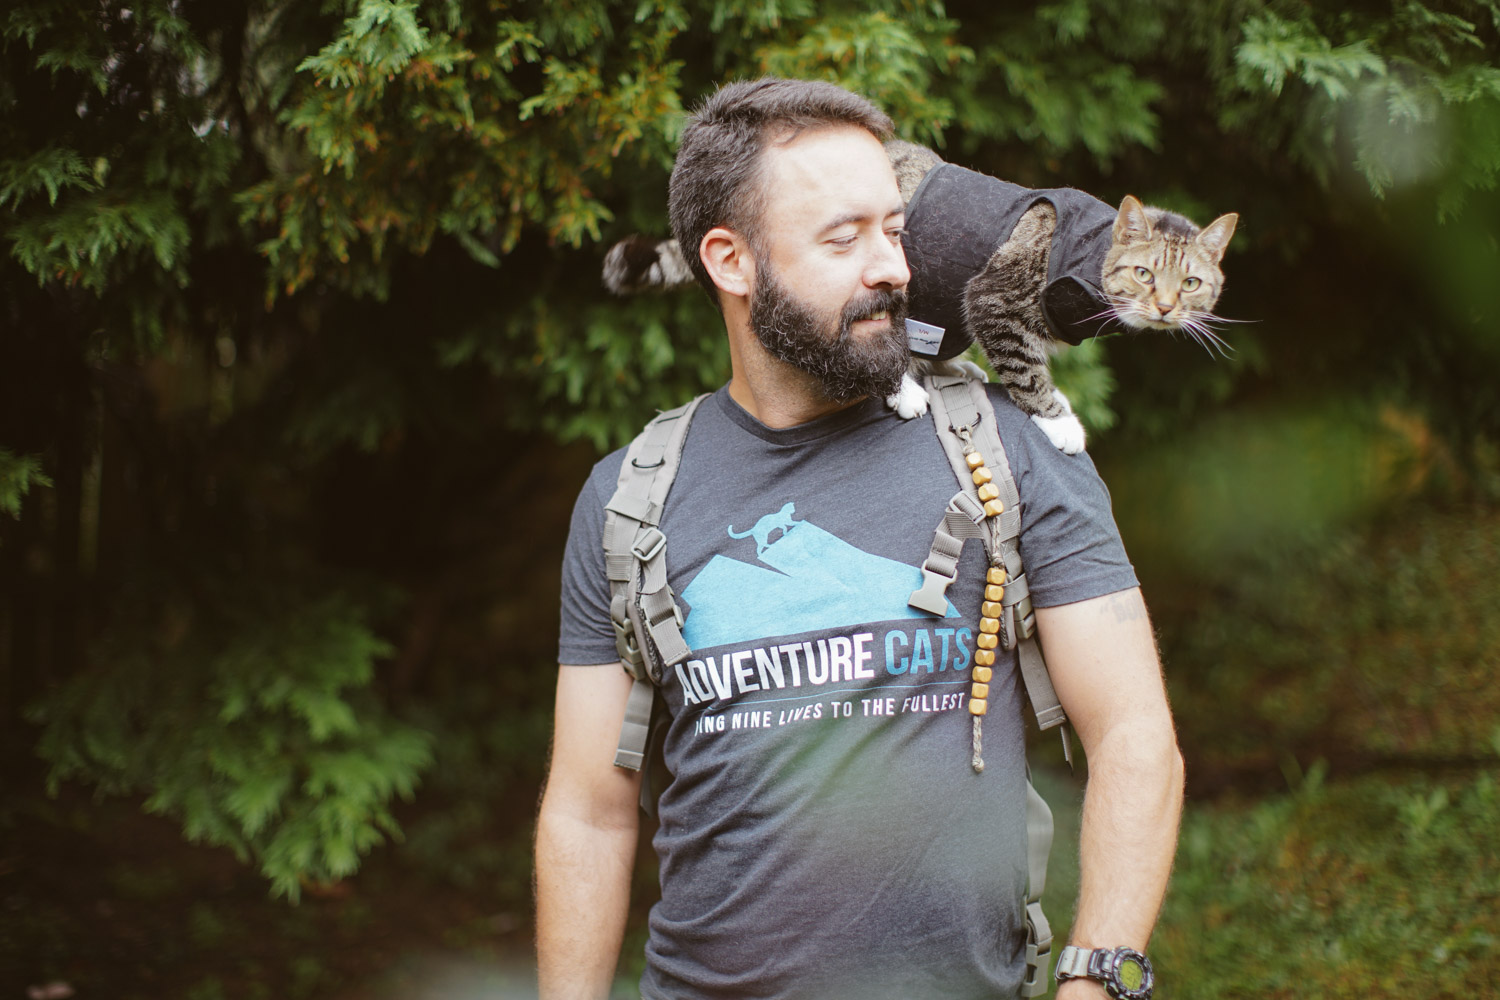 adventure-cats-shirt-chad